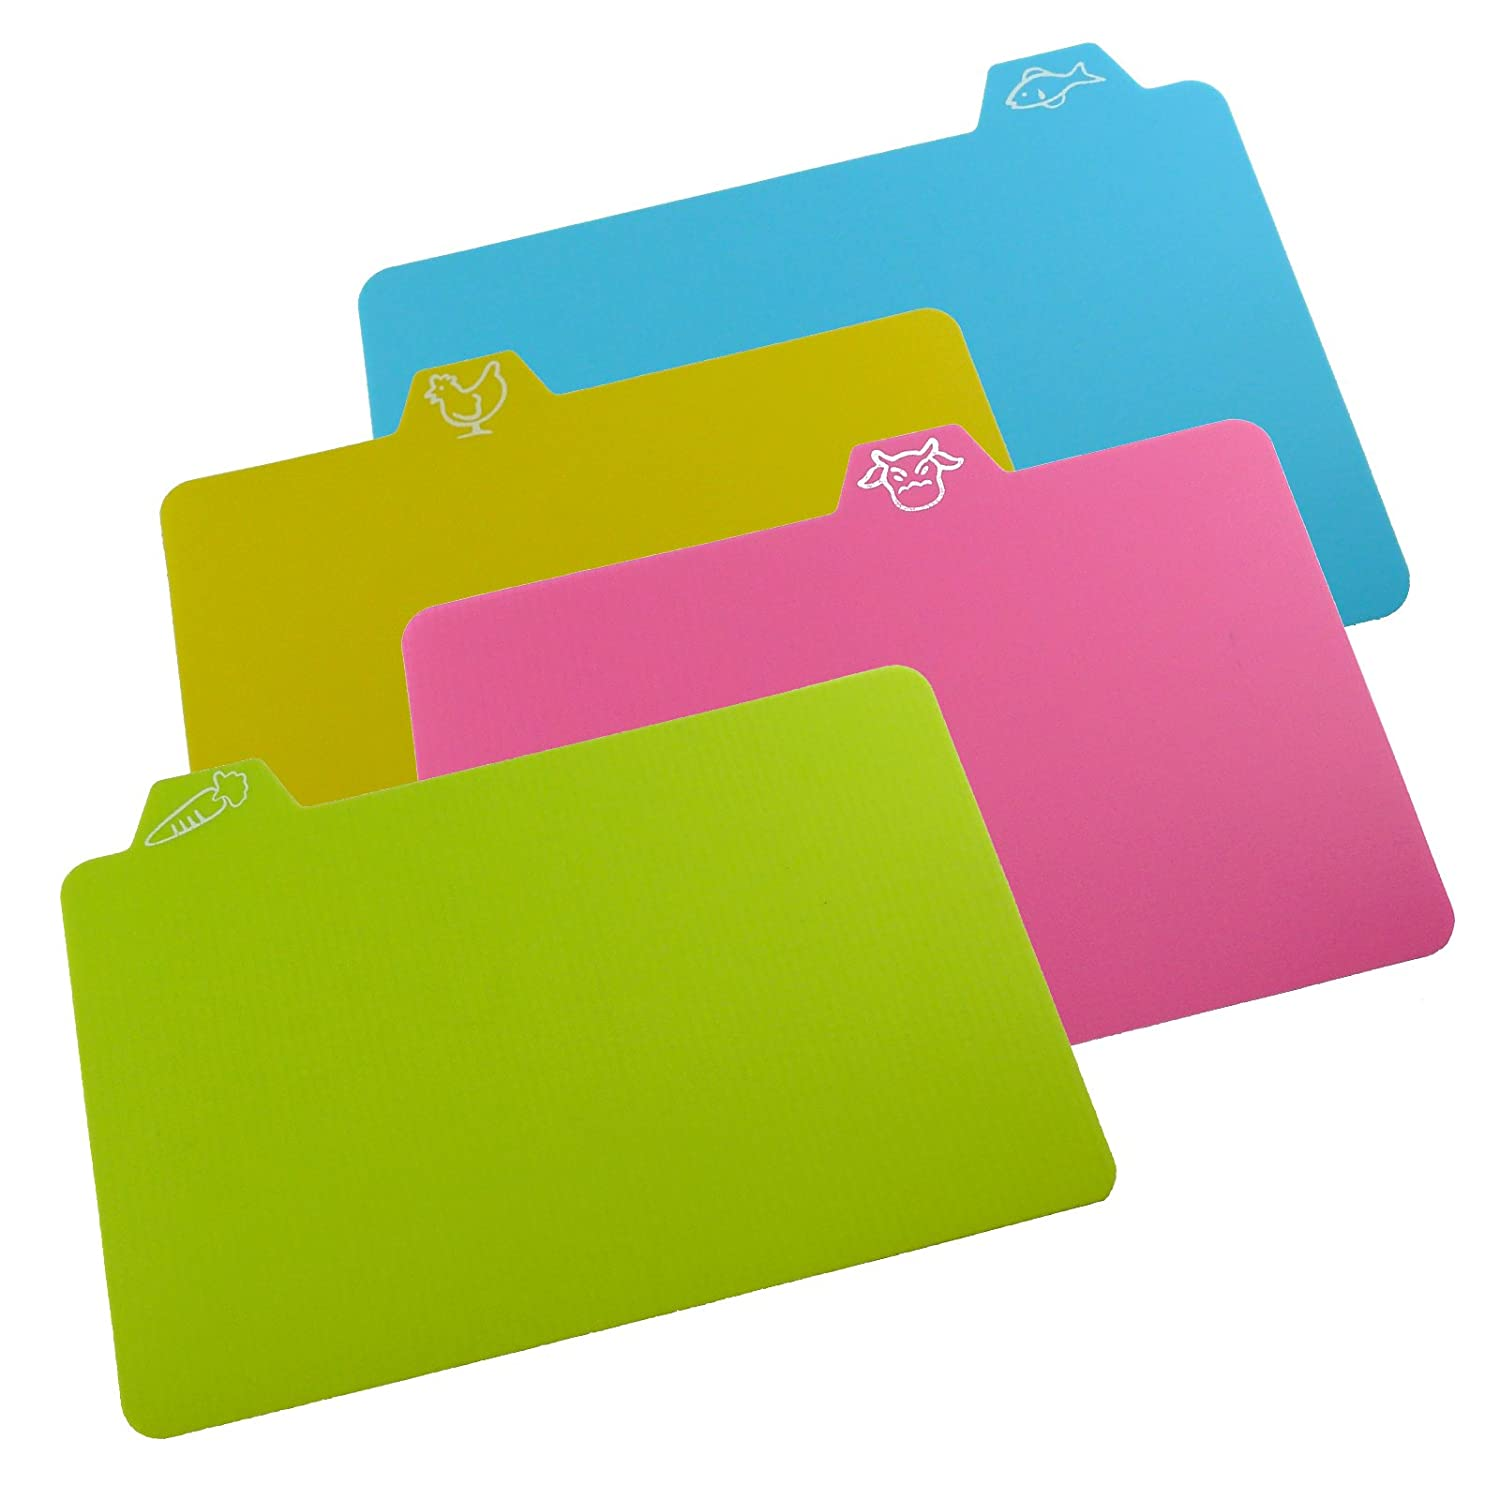 Chopping Mats - Set Of 4 Flexible Colour Coded Cutting Mats by Rose Evans